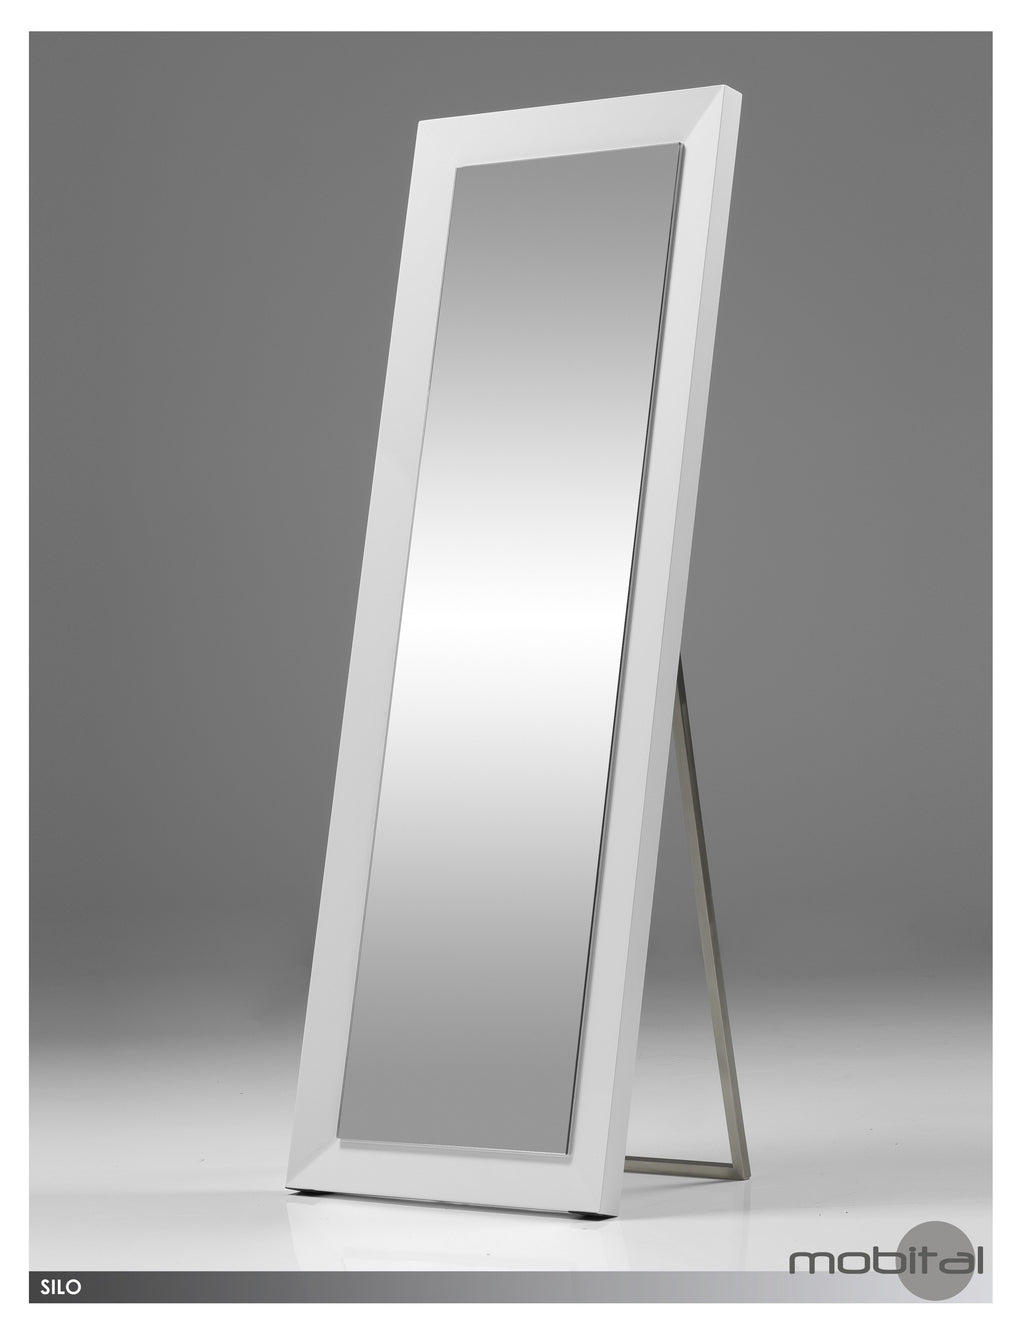 Silo Standing Mirror  (High Gloss White)